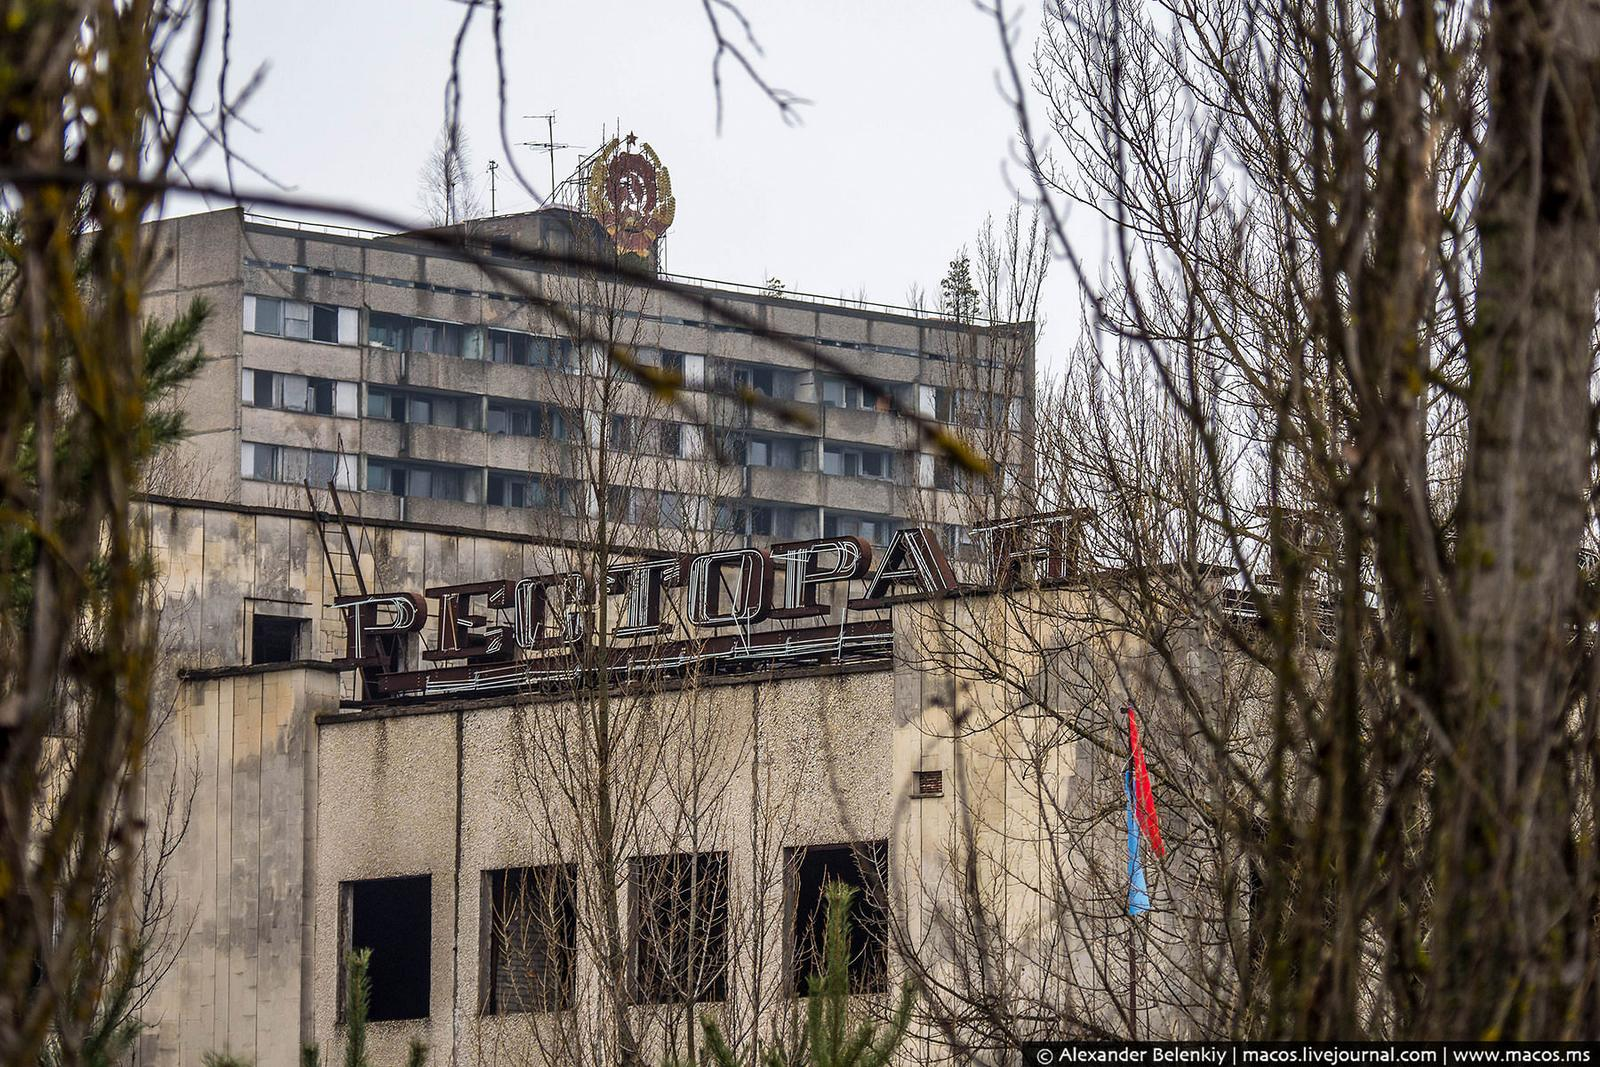 Ghost Town Of Pripyat 32 Years After Evacuation